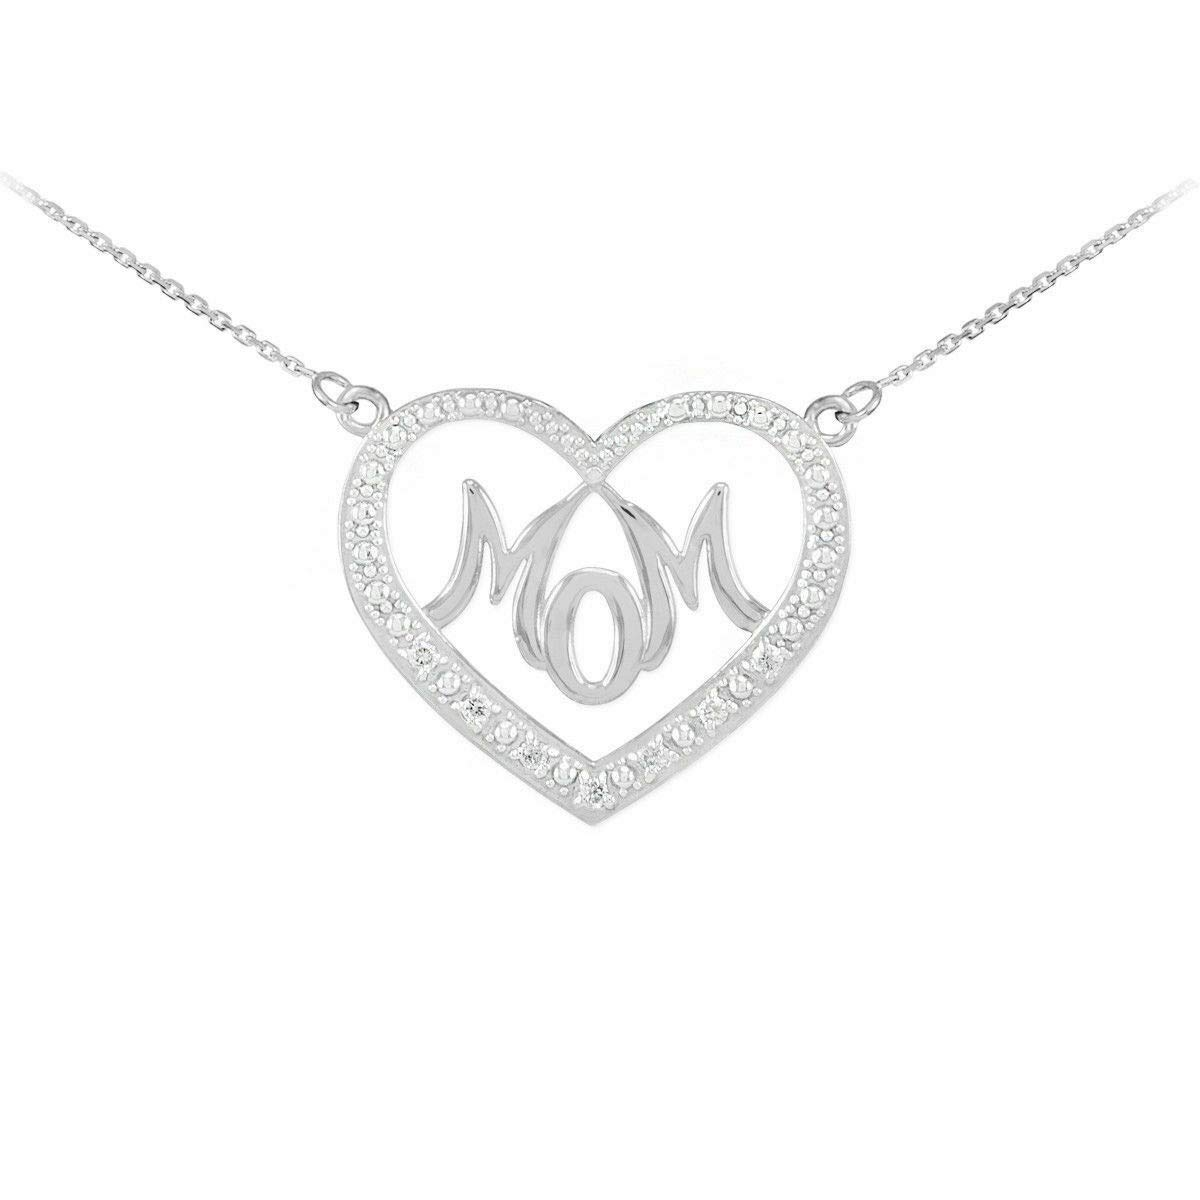 14k Yellow Gold Plated 925 Silver 0.15 Ct Round Cut Simulated Diamond HeartMom Pendant With 18 Chain